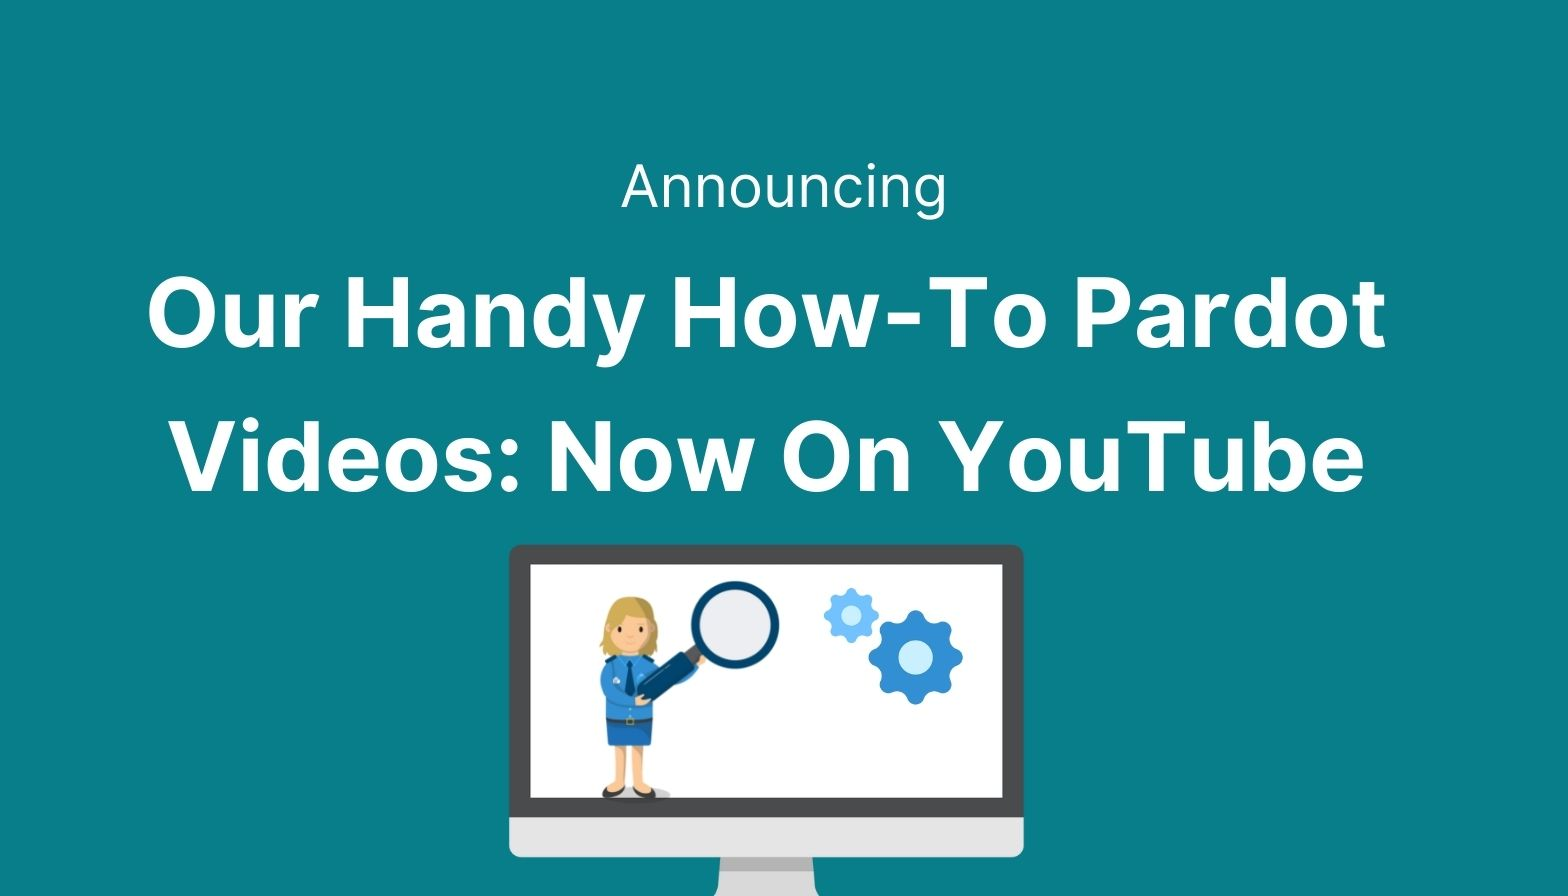 Feature image: Announcing - Our handy how-to Pardot videos now on YouTube